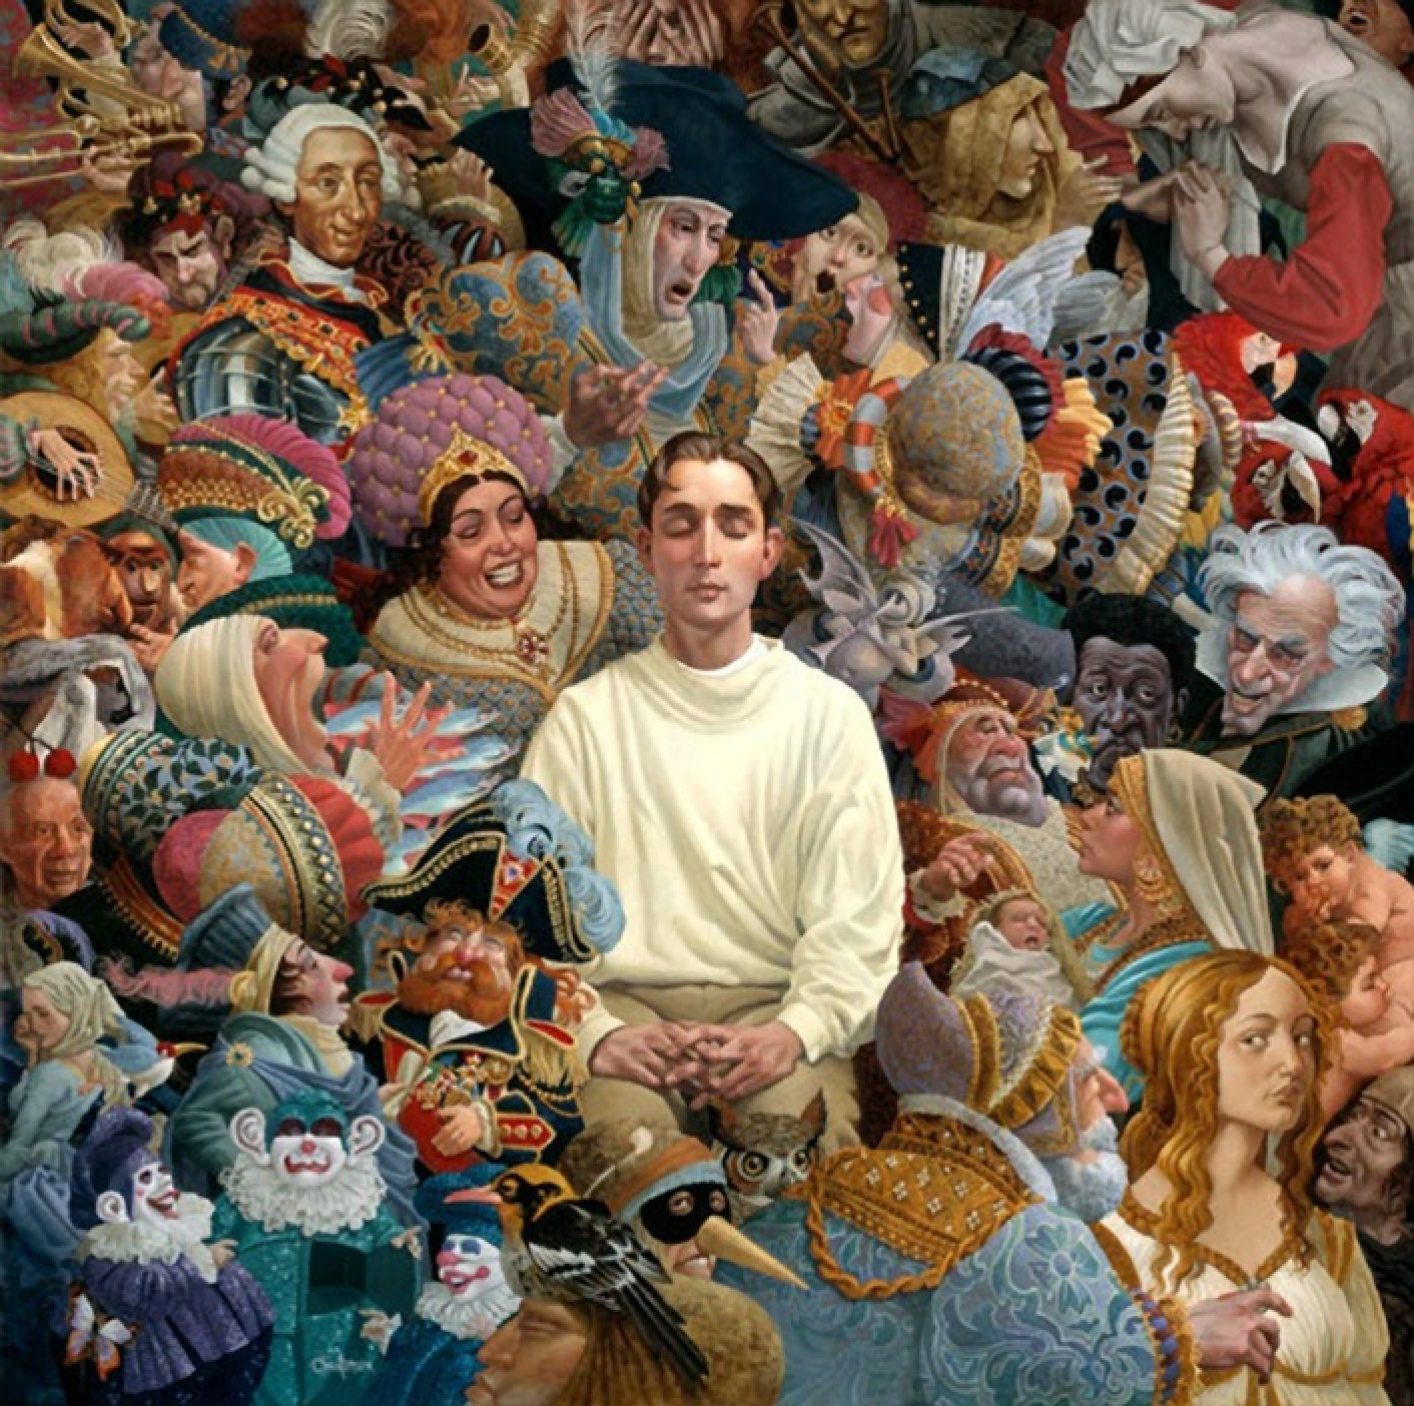 Listener by James Christensen: History, Analysis & Facts